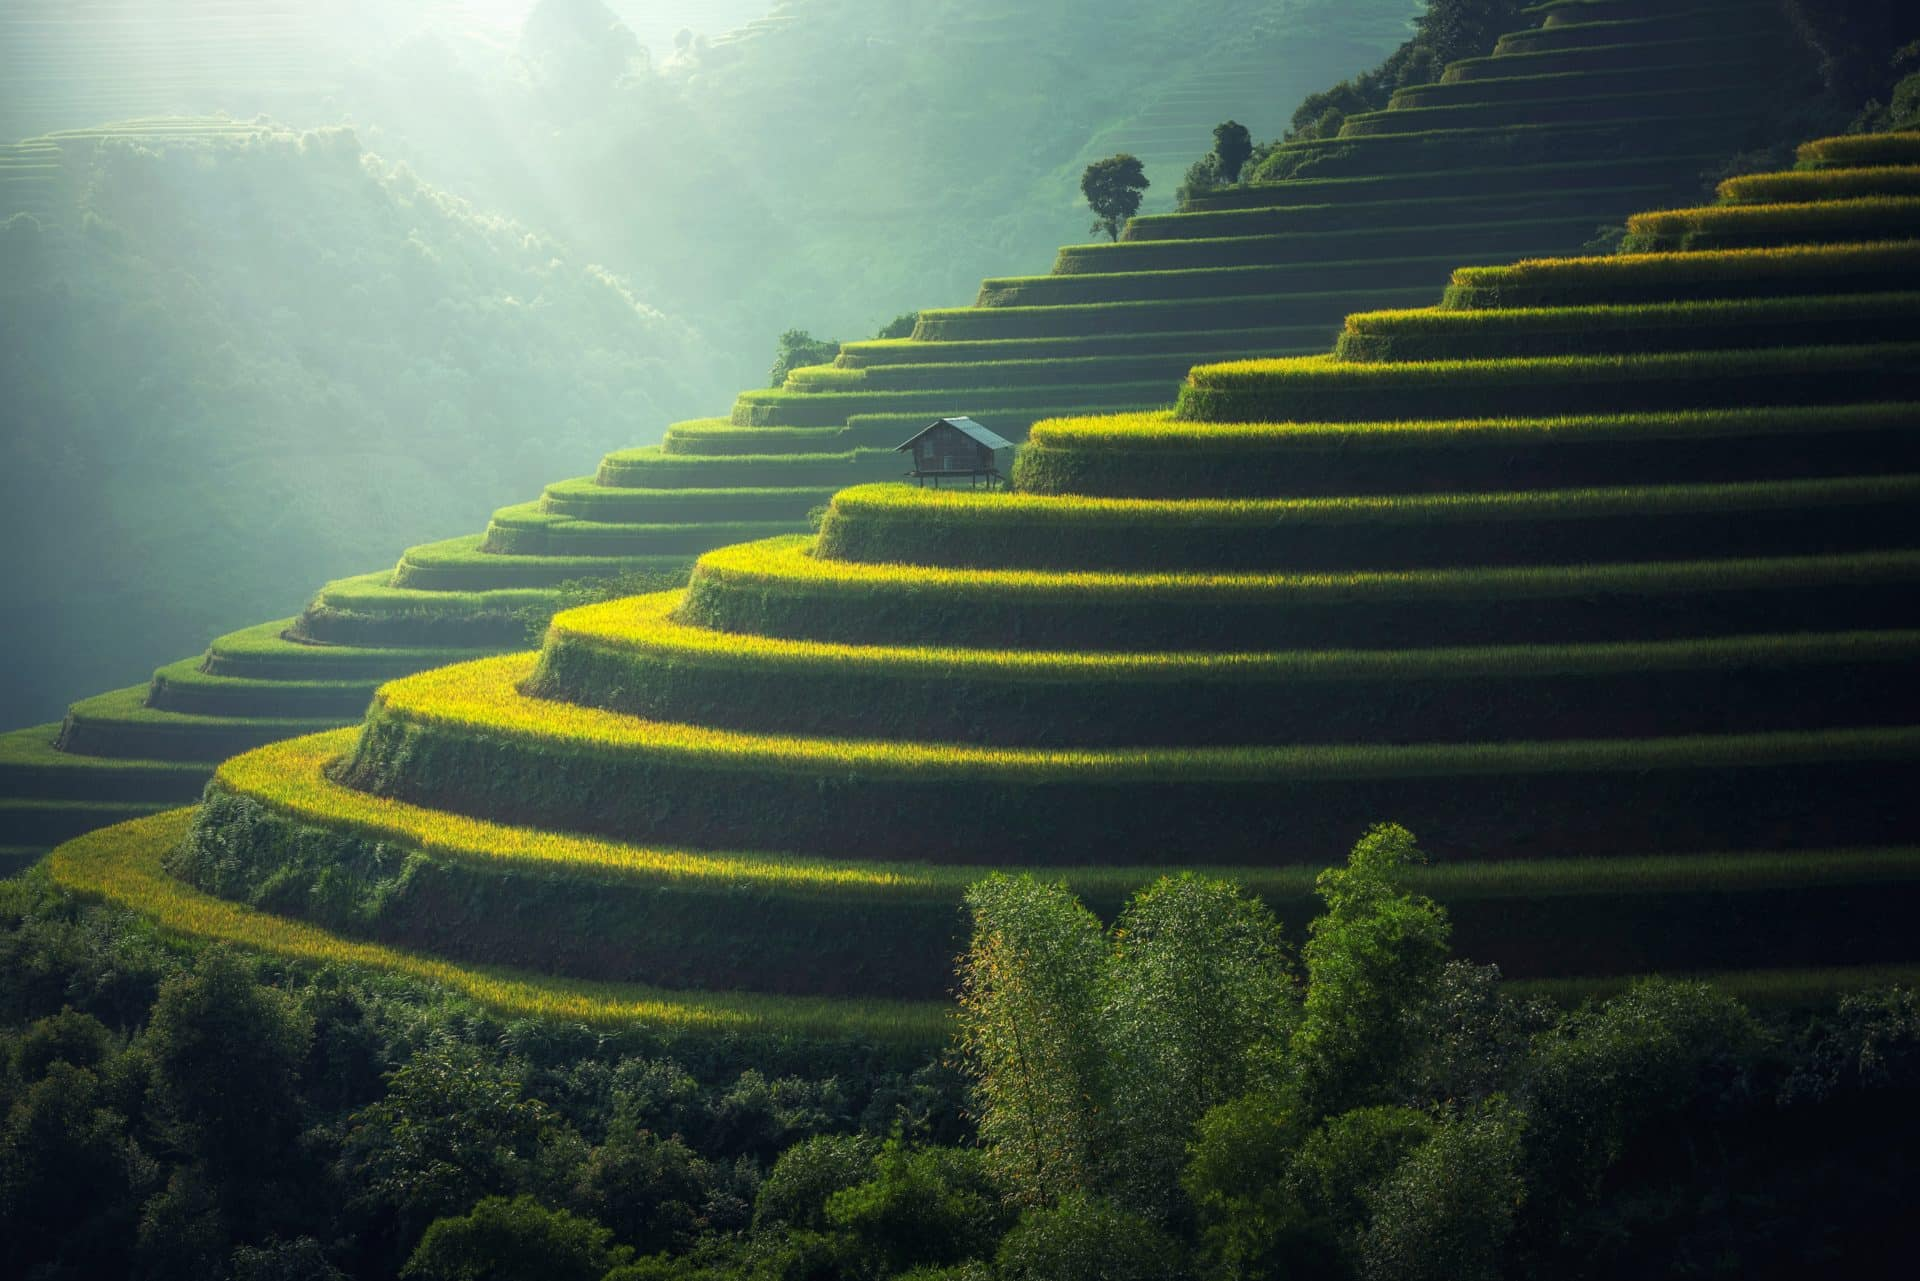 Image of terraced rice farms to represent Linux distributions for IoT stacks